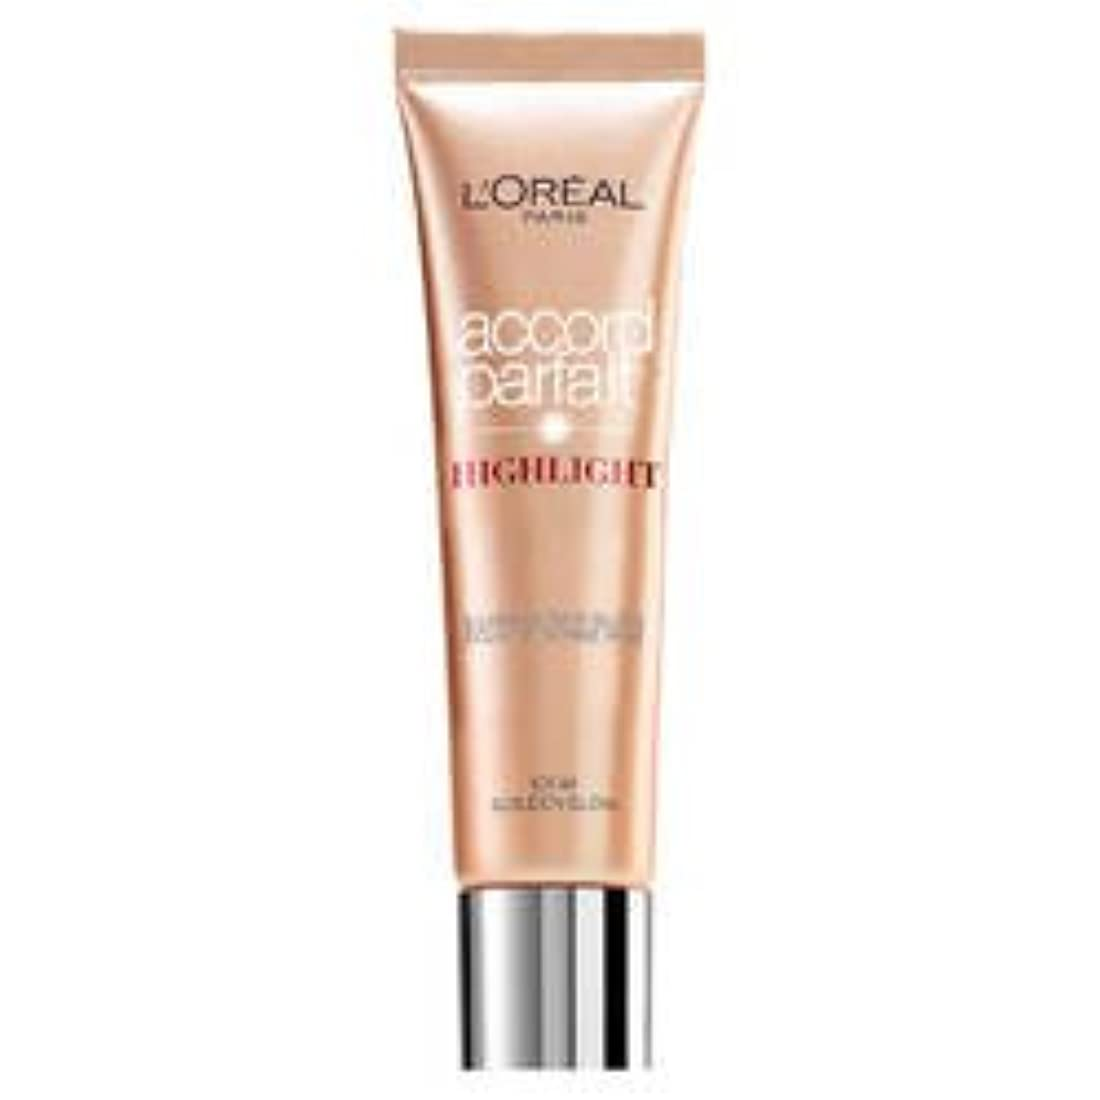 きちんとした自分のために志すL 'Oréal Paris - ACCORD PARFAIT Highlight Enlumineur Liquide - 101 Dore